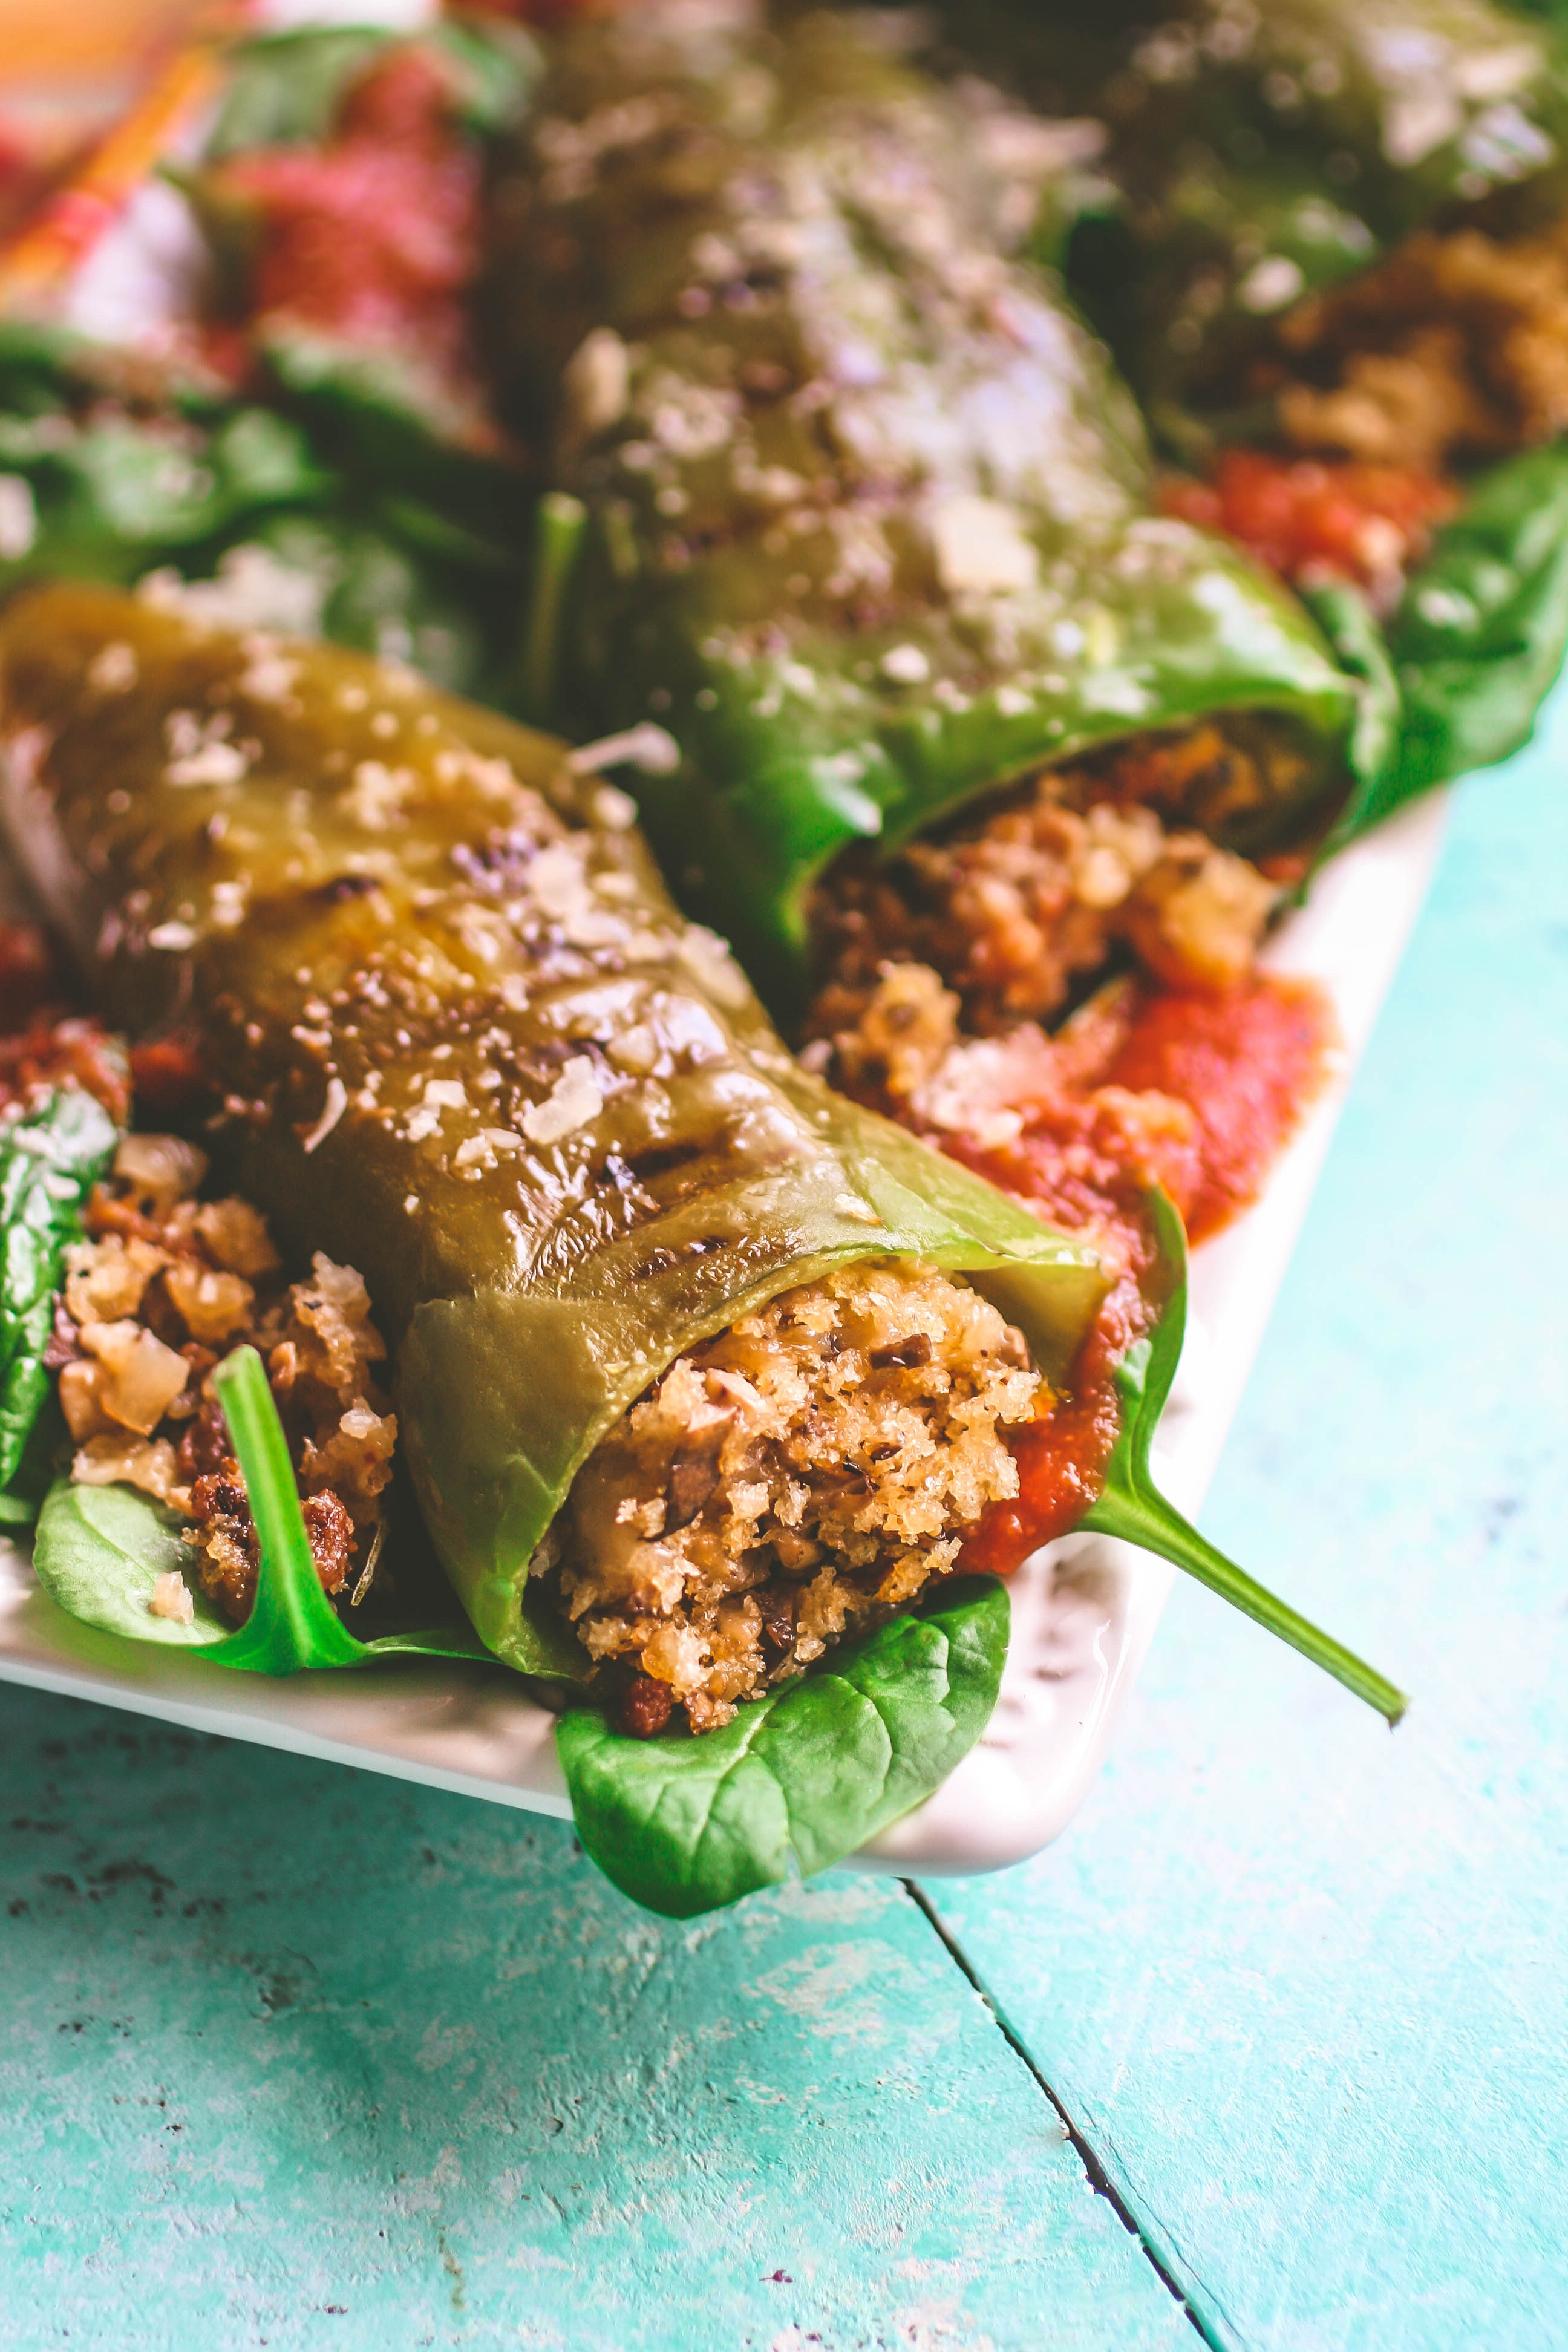 Sausage & Mushroom Stuffed and Grilled Peppers are perfect for grilling season. Sausage & Mushroom Stuffed and Grilled Peppers make a flavorful and fun main dish.